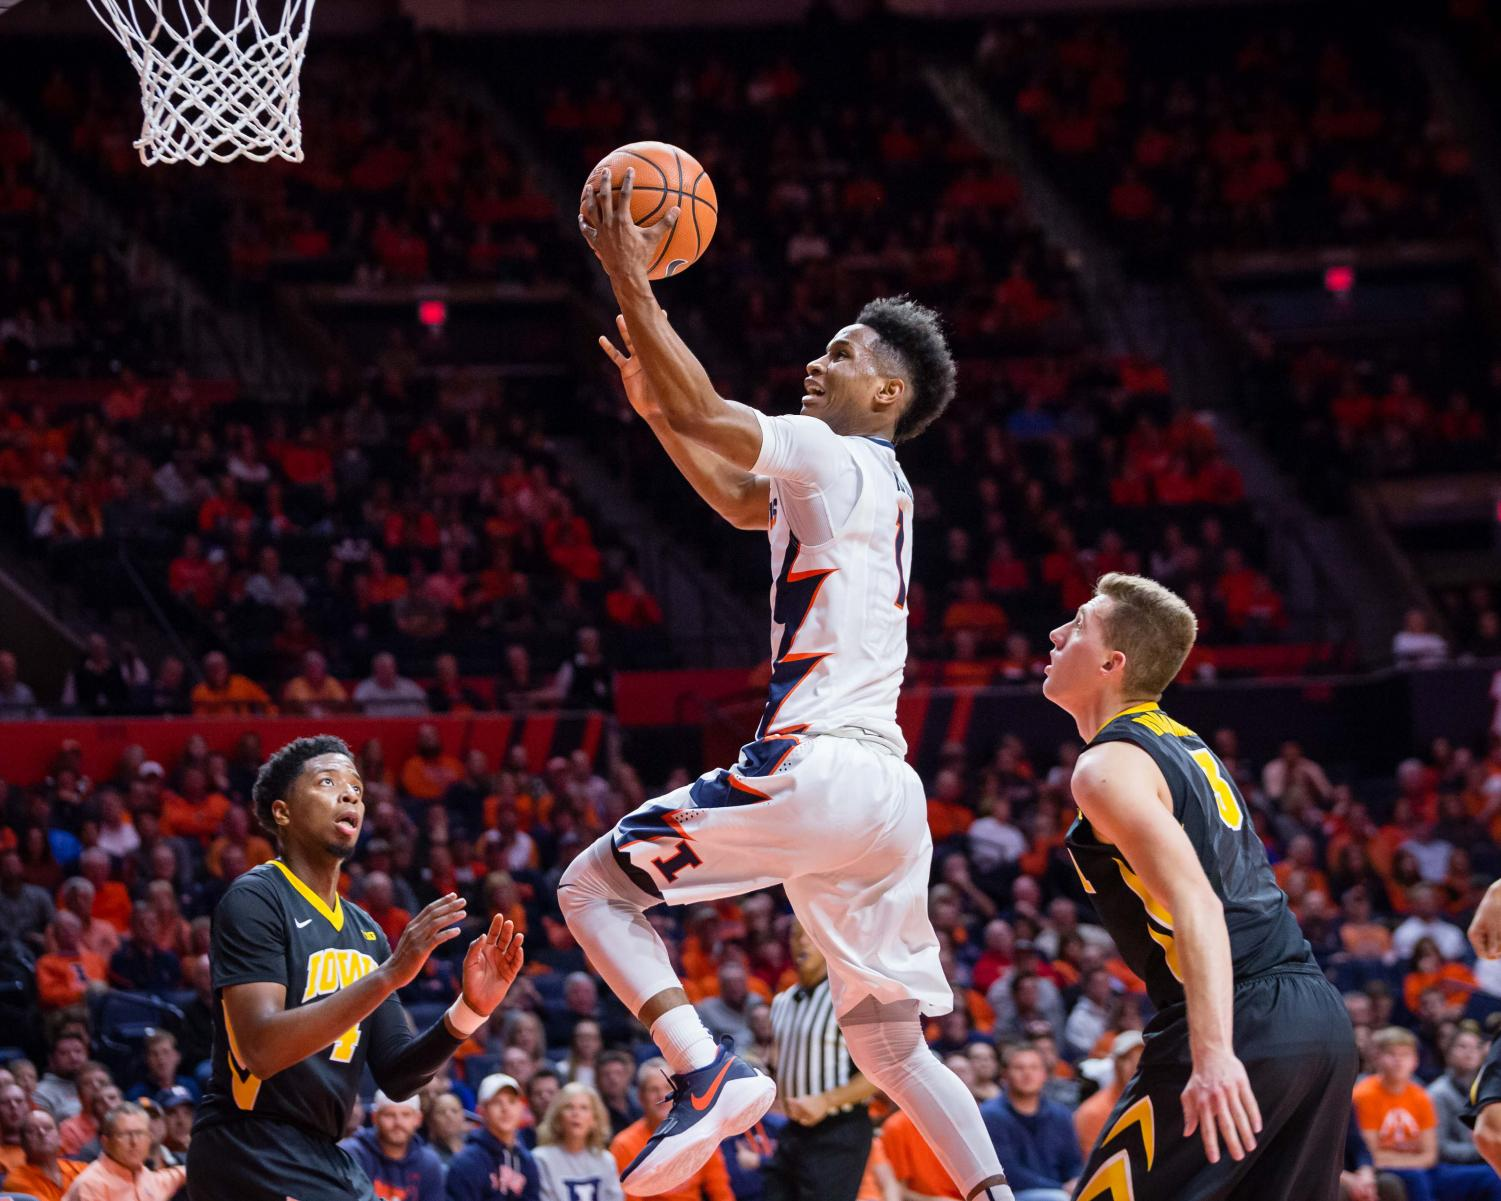 Illinois guard Trent Frazier (1) goes up for a layup during the game against Iowa at State Farm Center on Thursday, Jan. 11, 2018. The Illini lost in overtime 104-97.